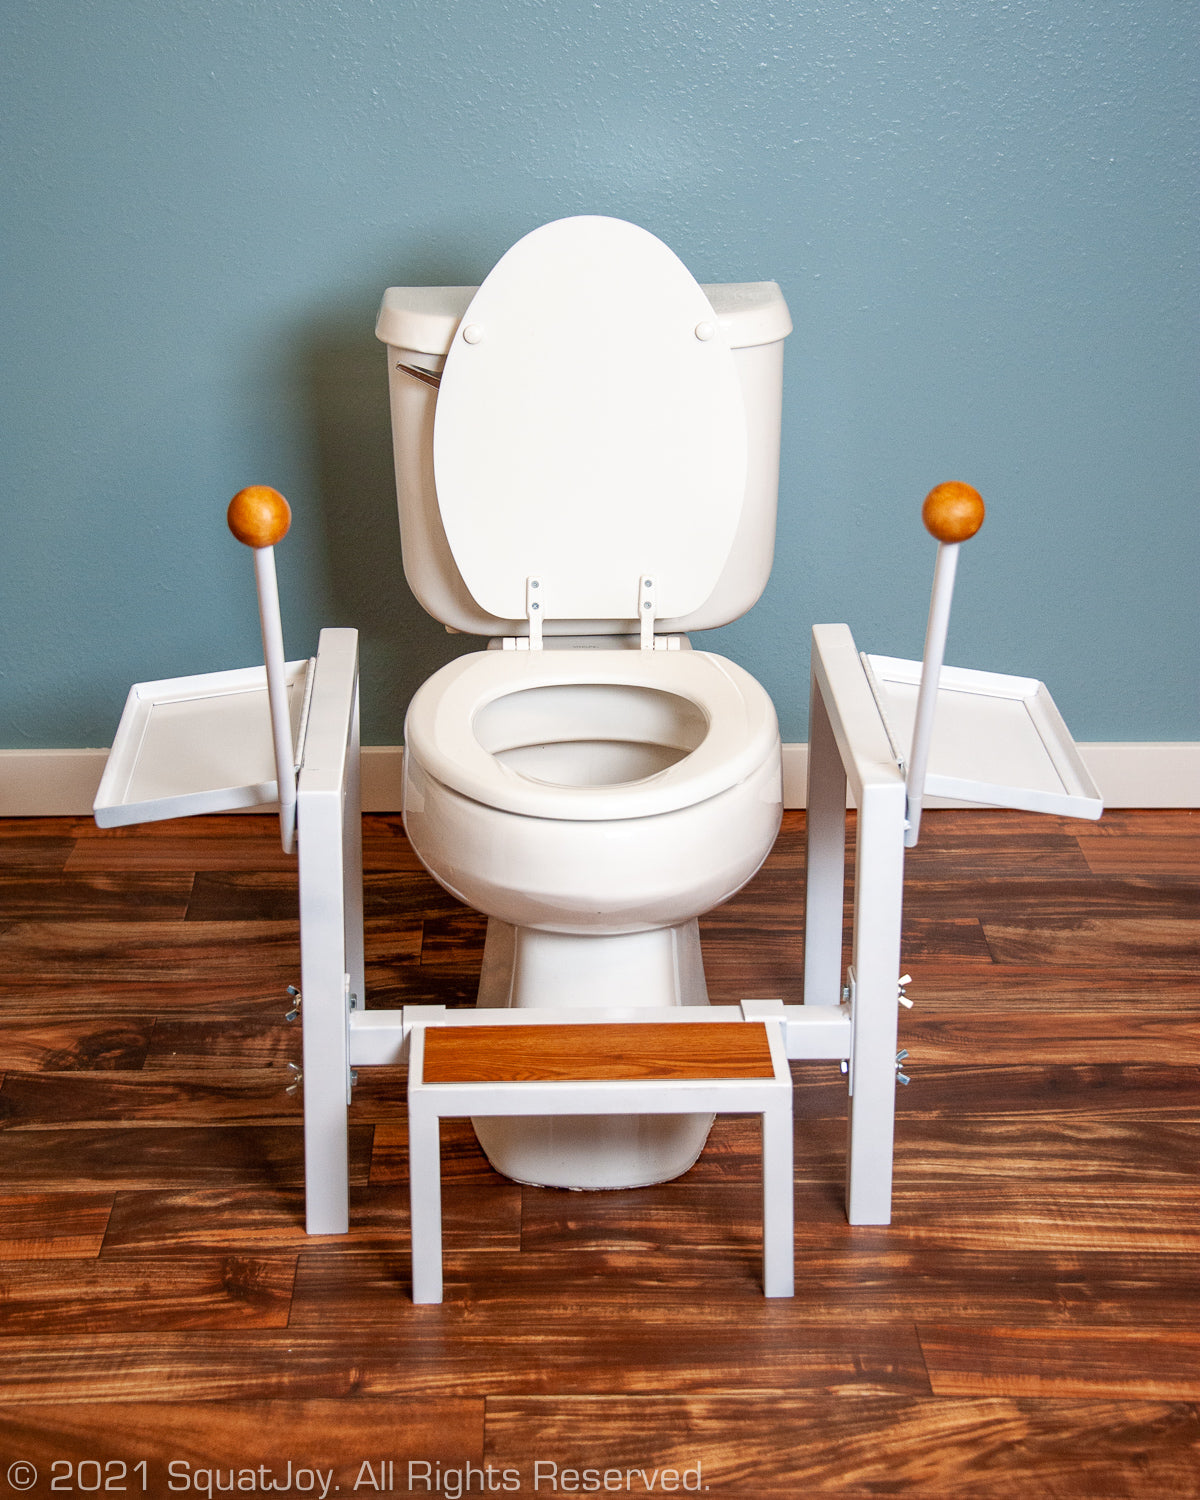 Full-squat toilet seat SquatJoy